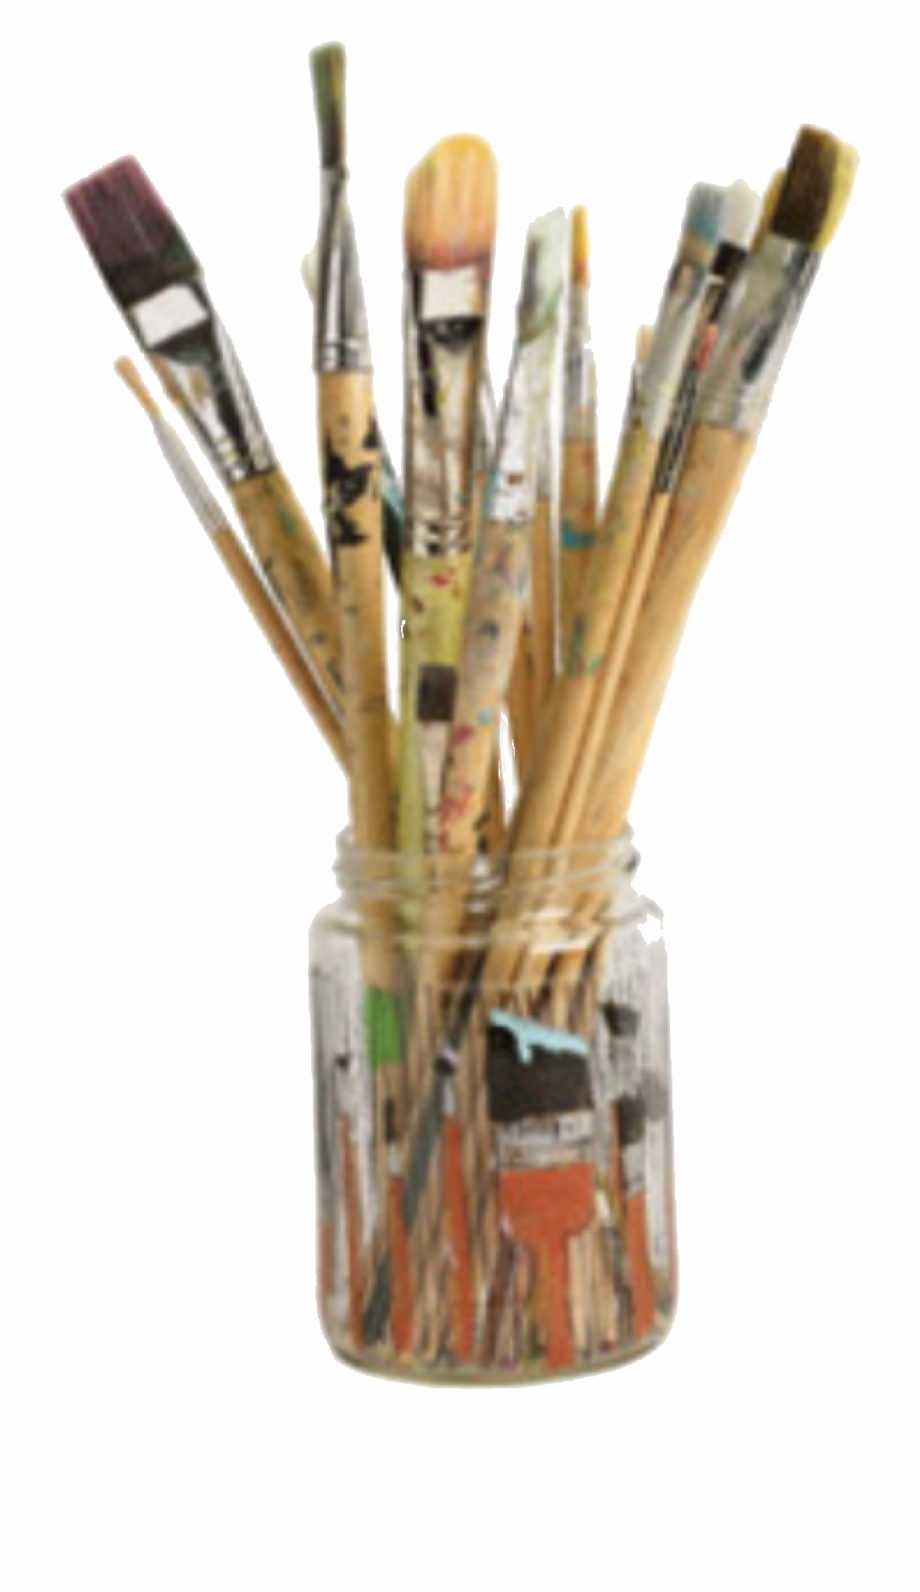 aesthetic #png #polyvore #paintbrush #art #warm.